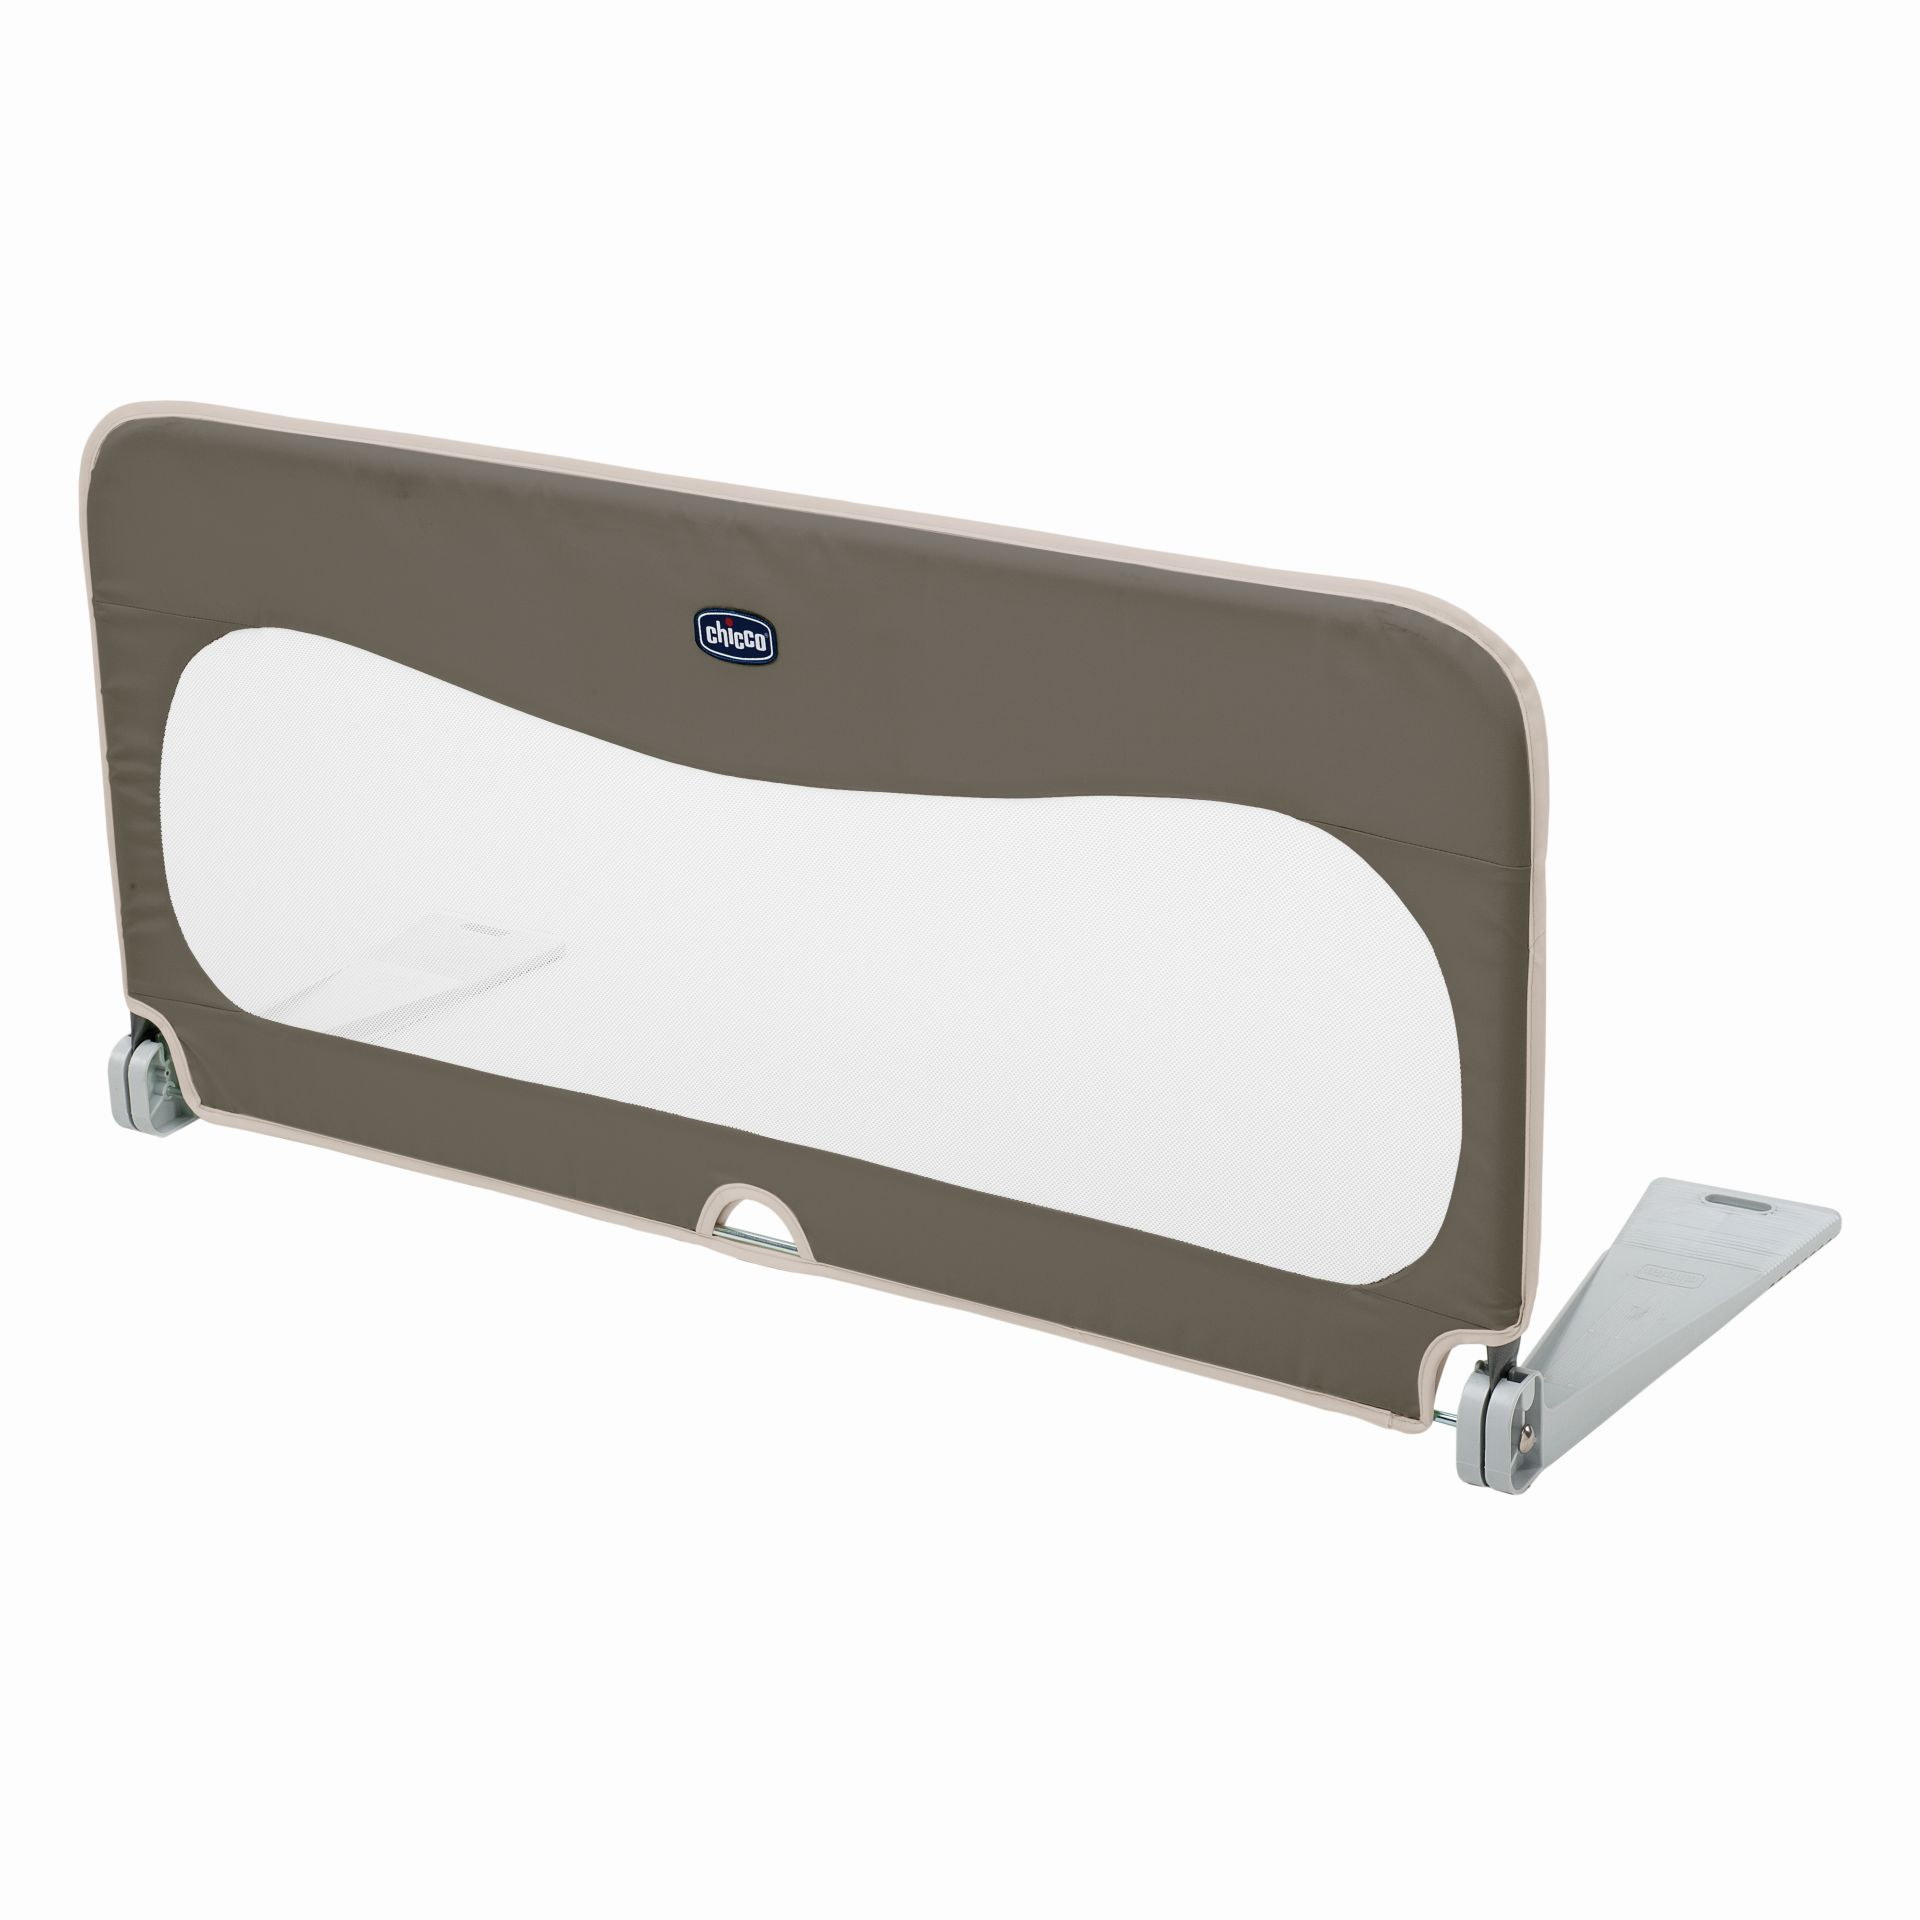 Chicco bed guard 135 cm buy at kidsroom living sleeping live safe - Sponde letto anziani ikea ...